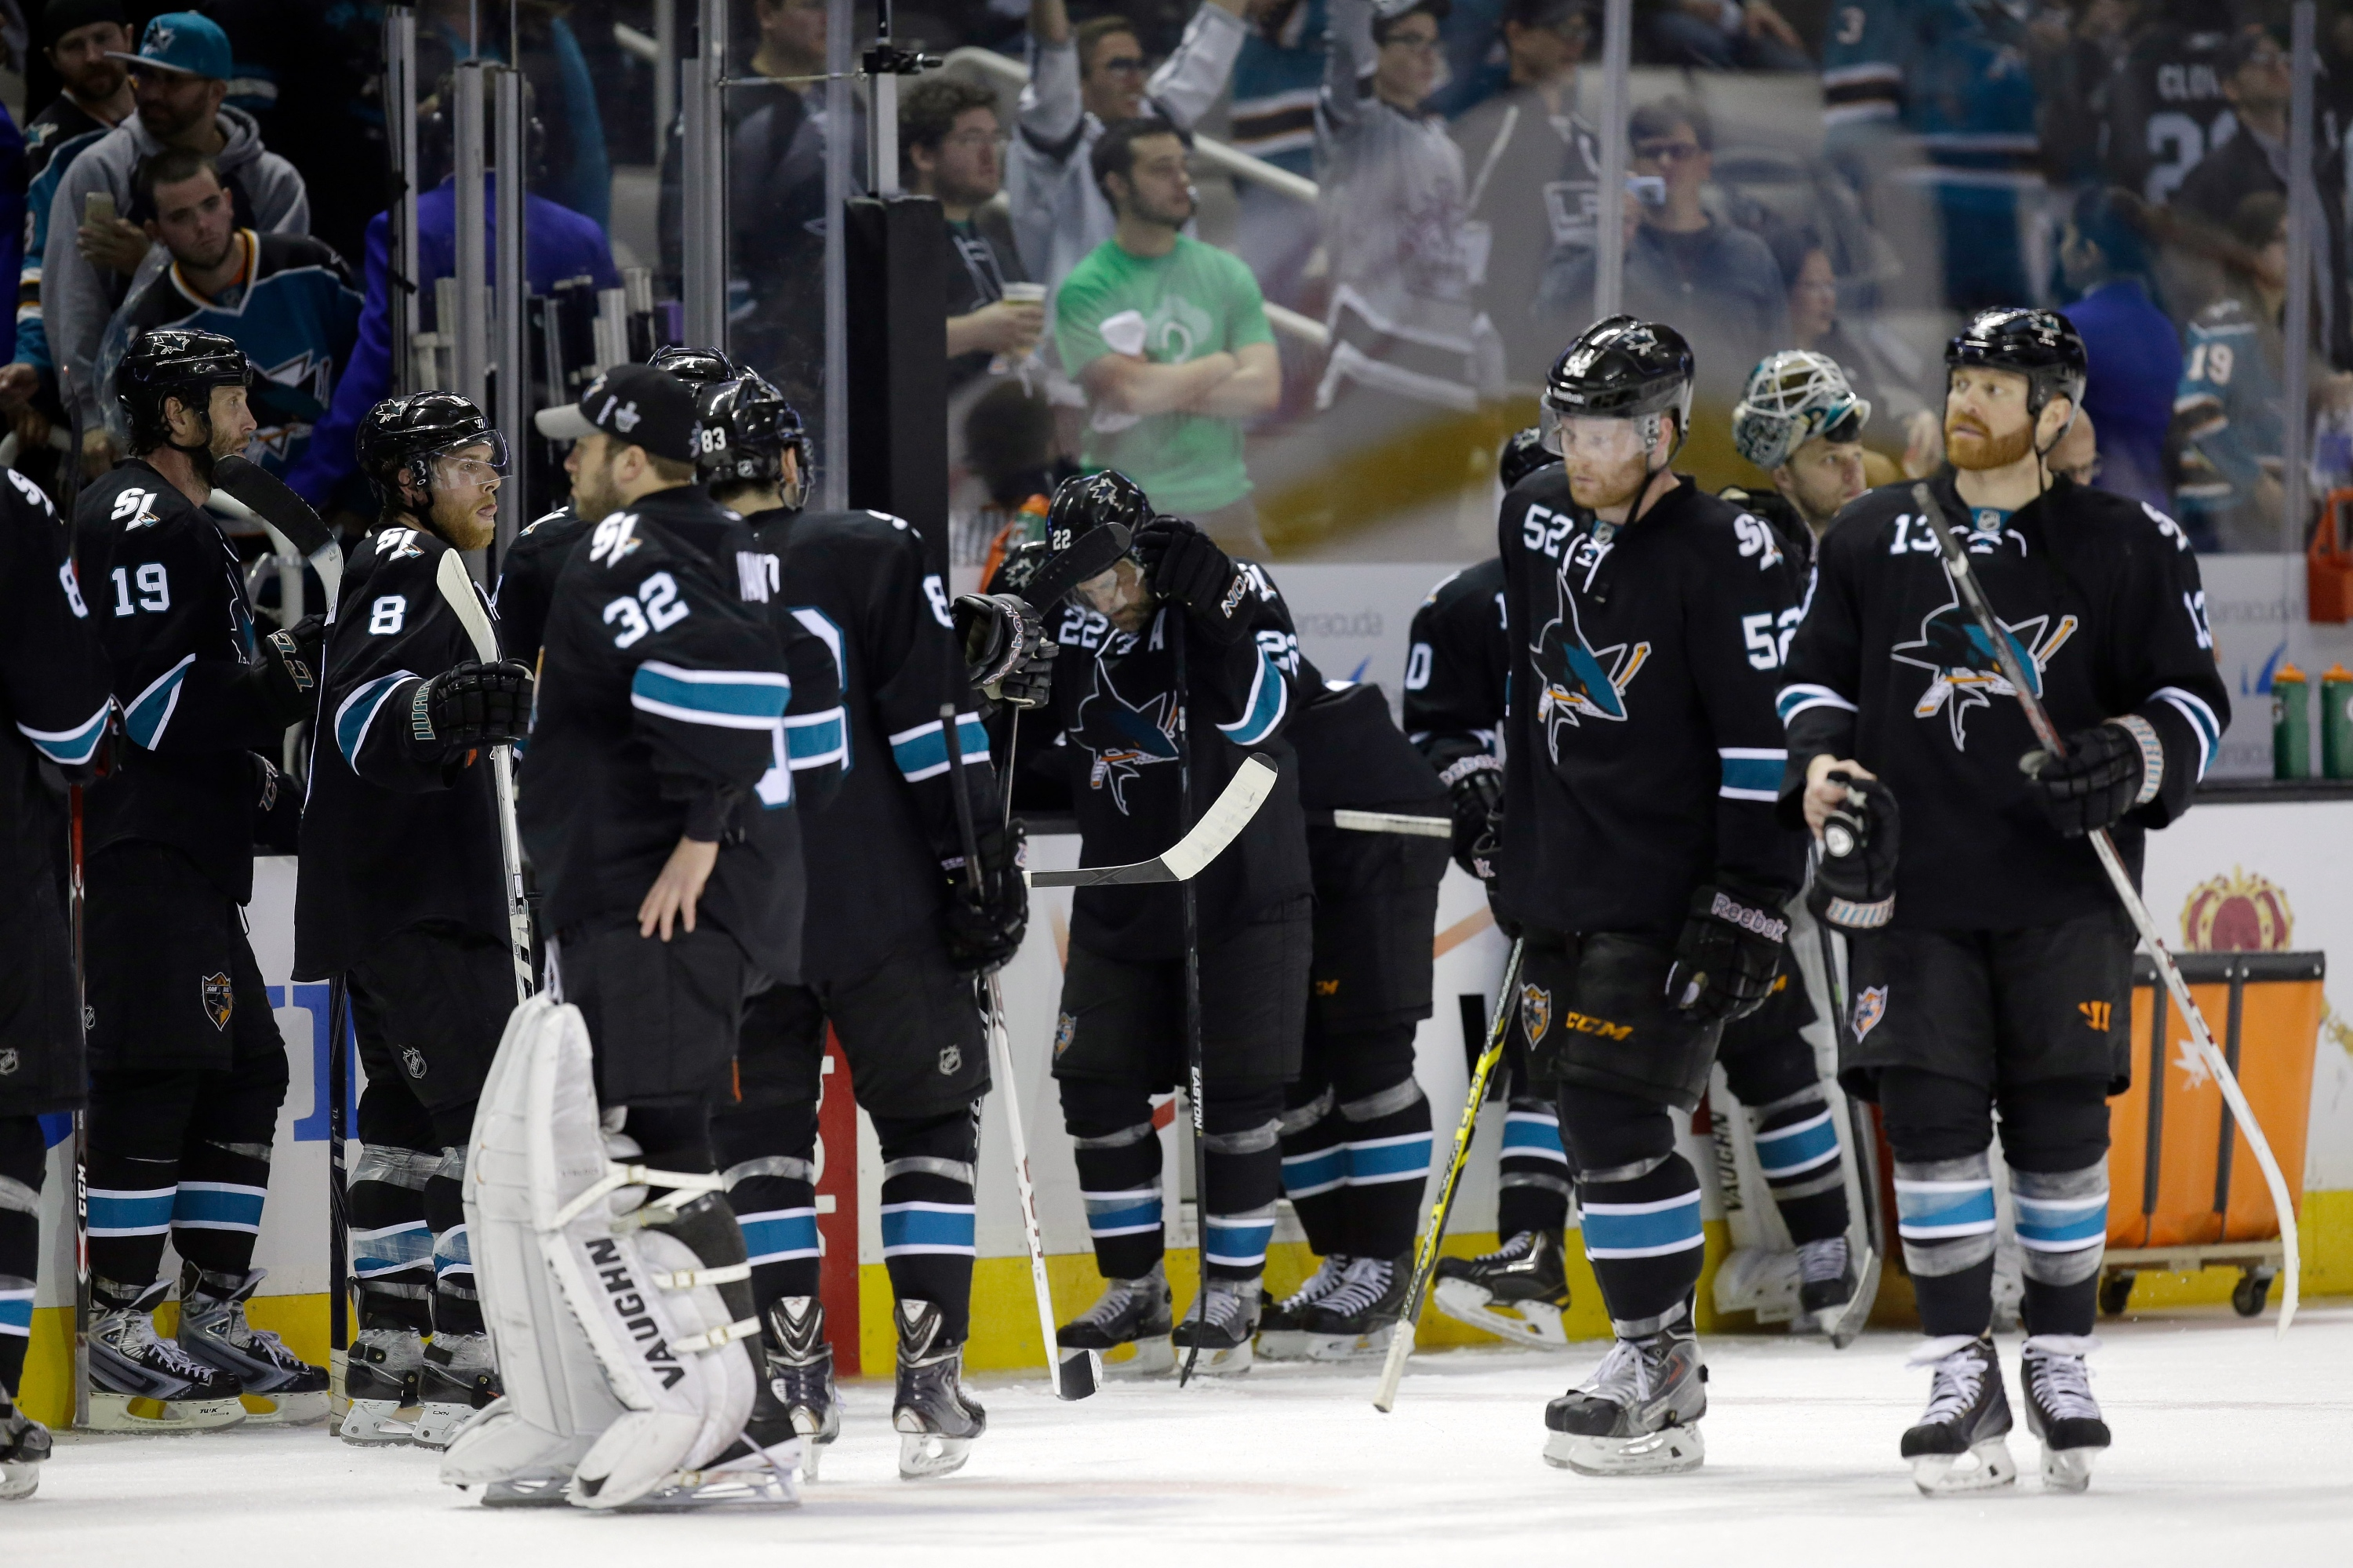 Turmoil In San Jose, But Stanley Cup Goal Remains The Same For Sharks Young & Old Alike